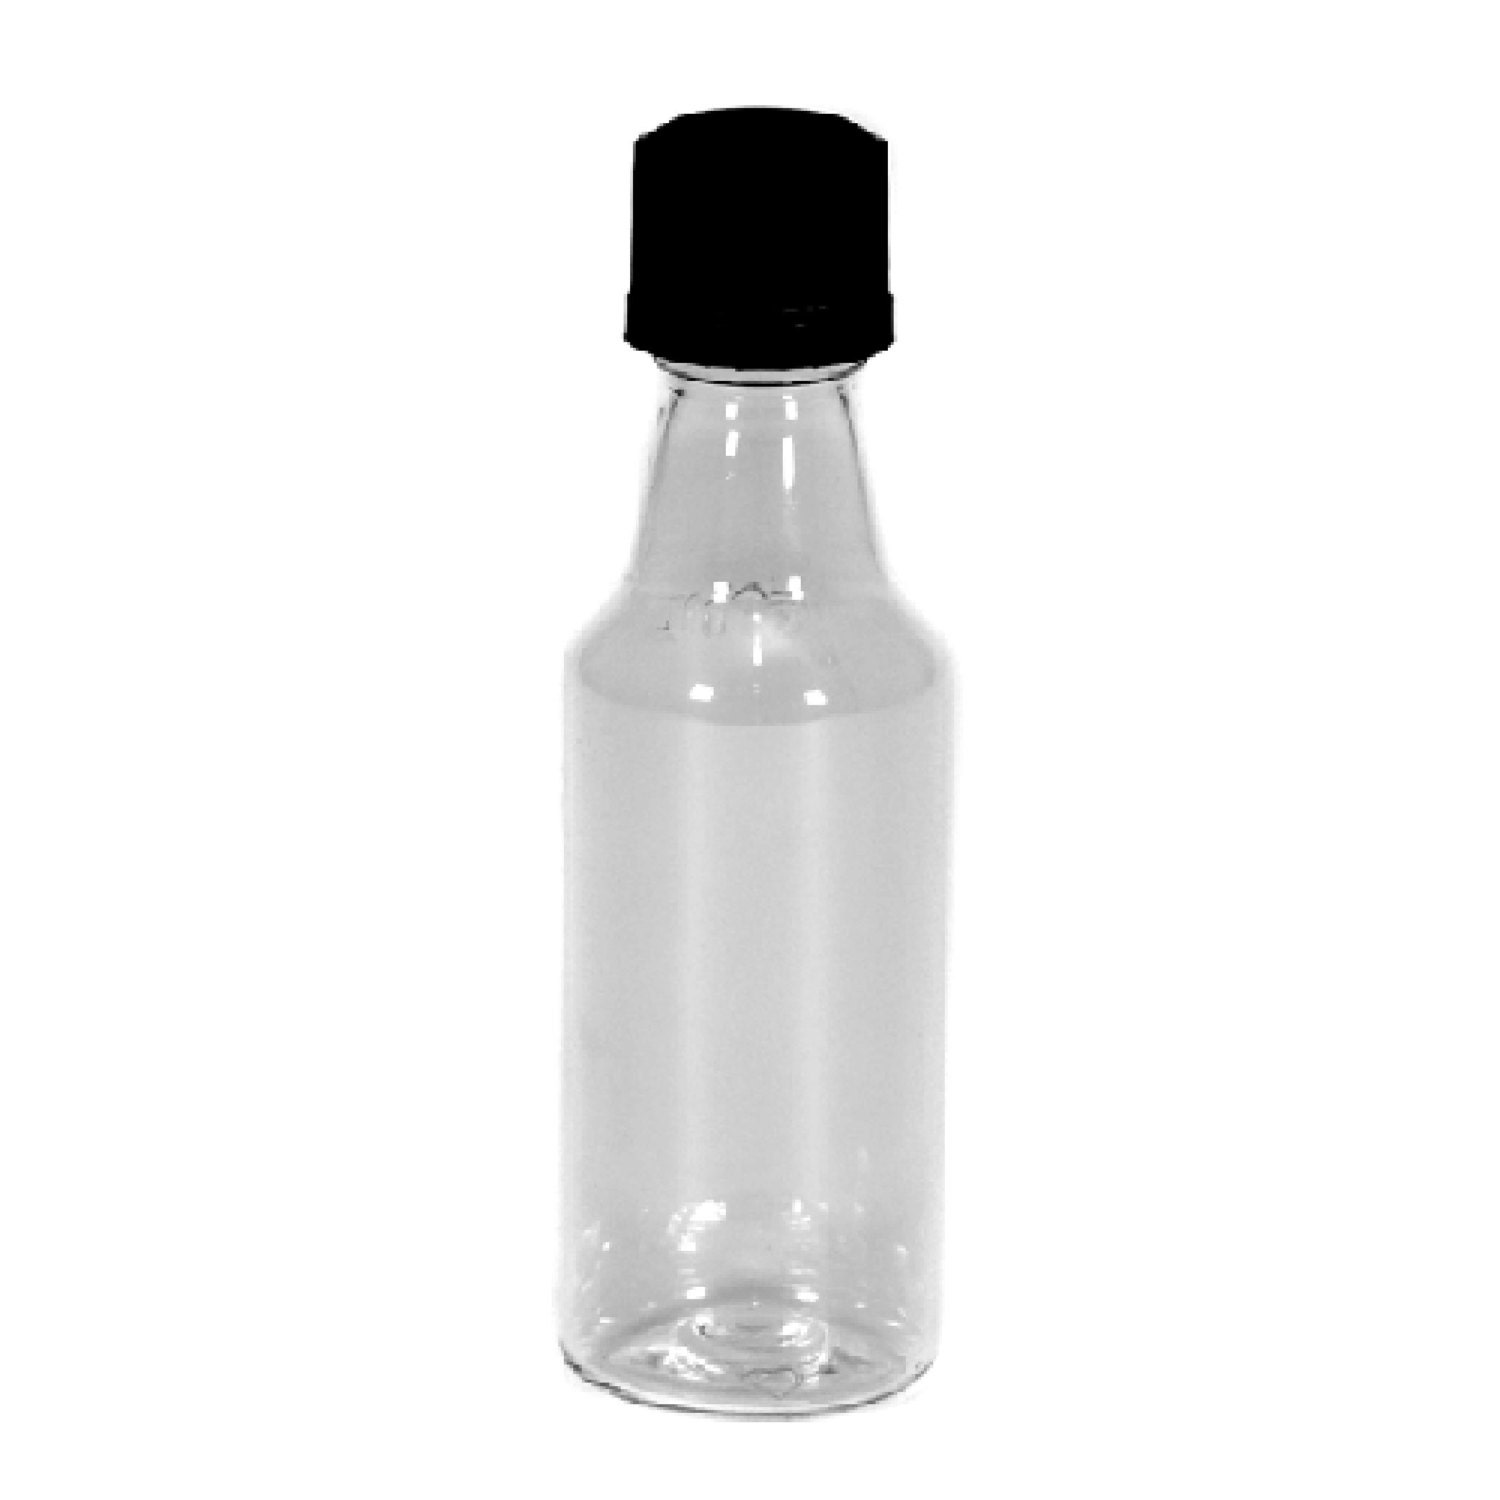 Mini ROUND Plastic Alcohol 50ml Liquor Bottle Shots + WHITE Caps, 12 ...